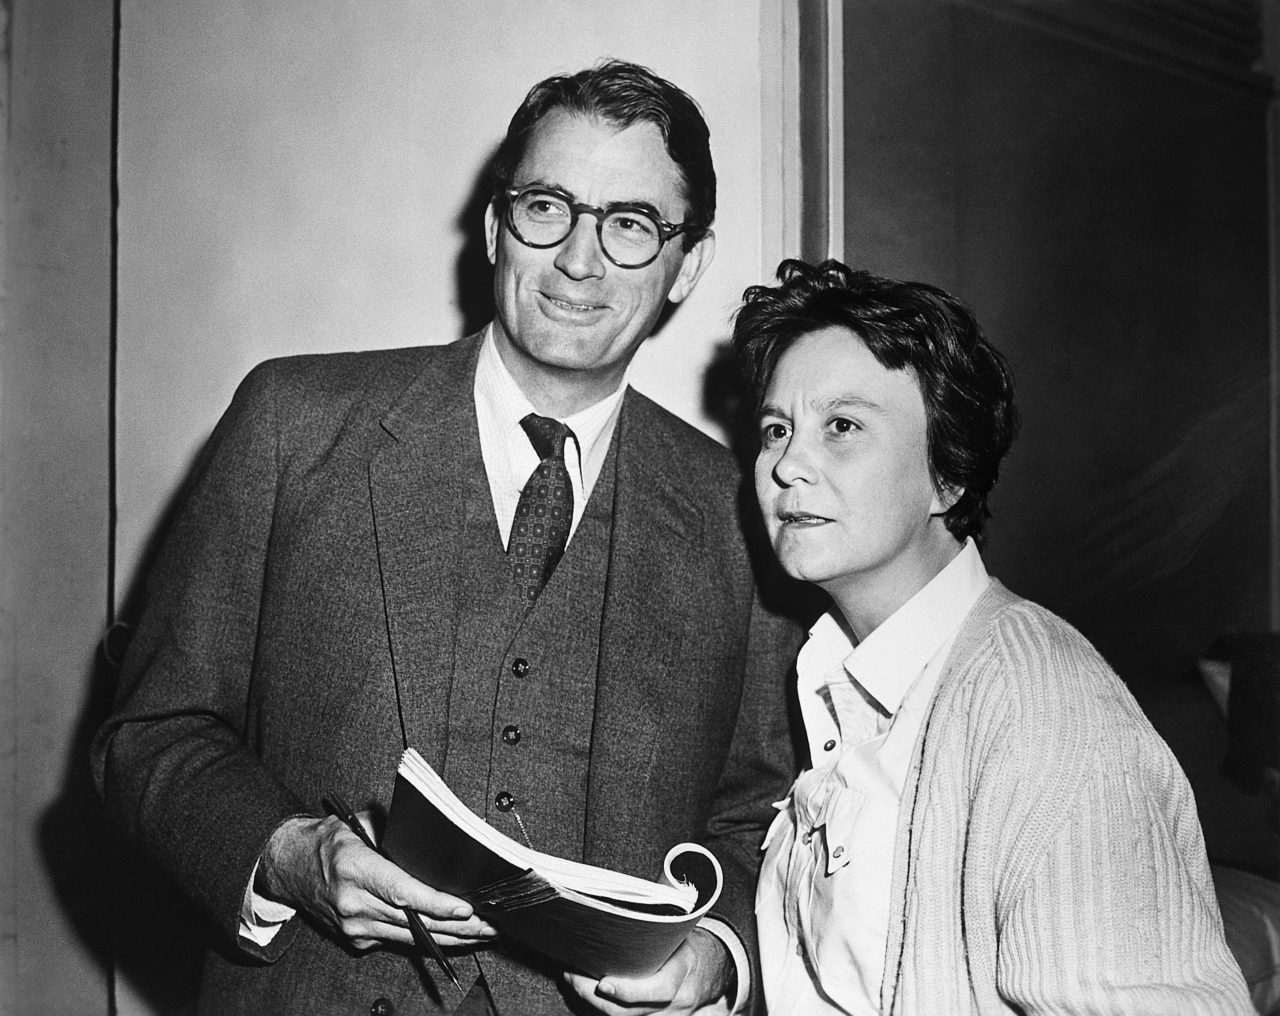 Gregory Peck and Harper Lee on Set of To Kill a Mockingbird